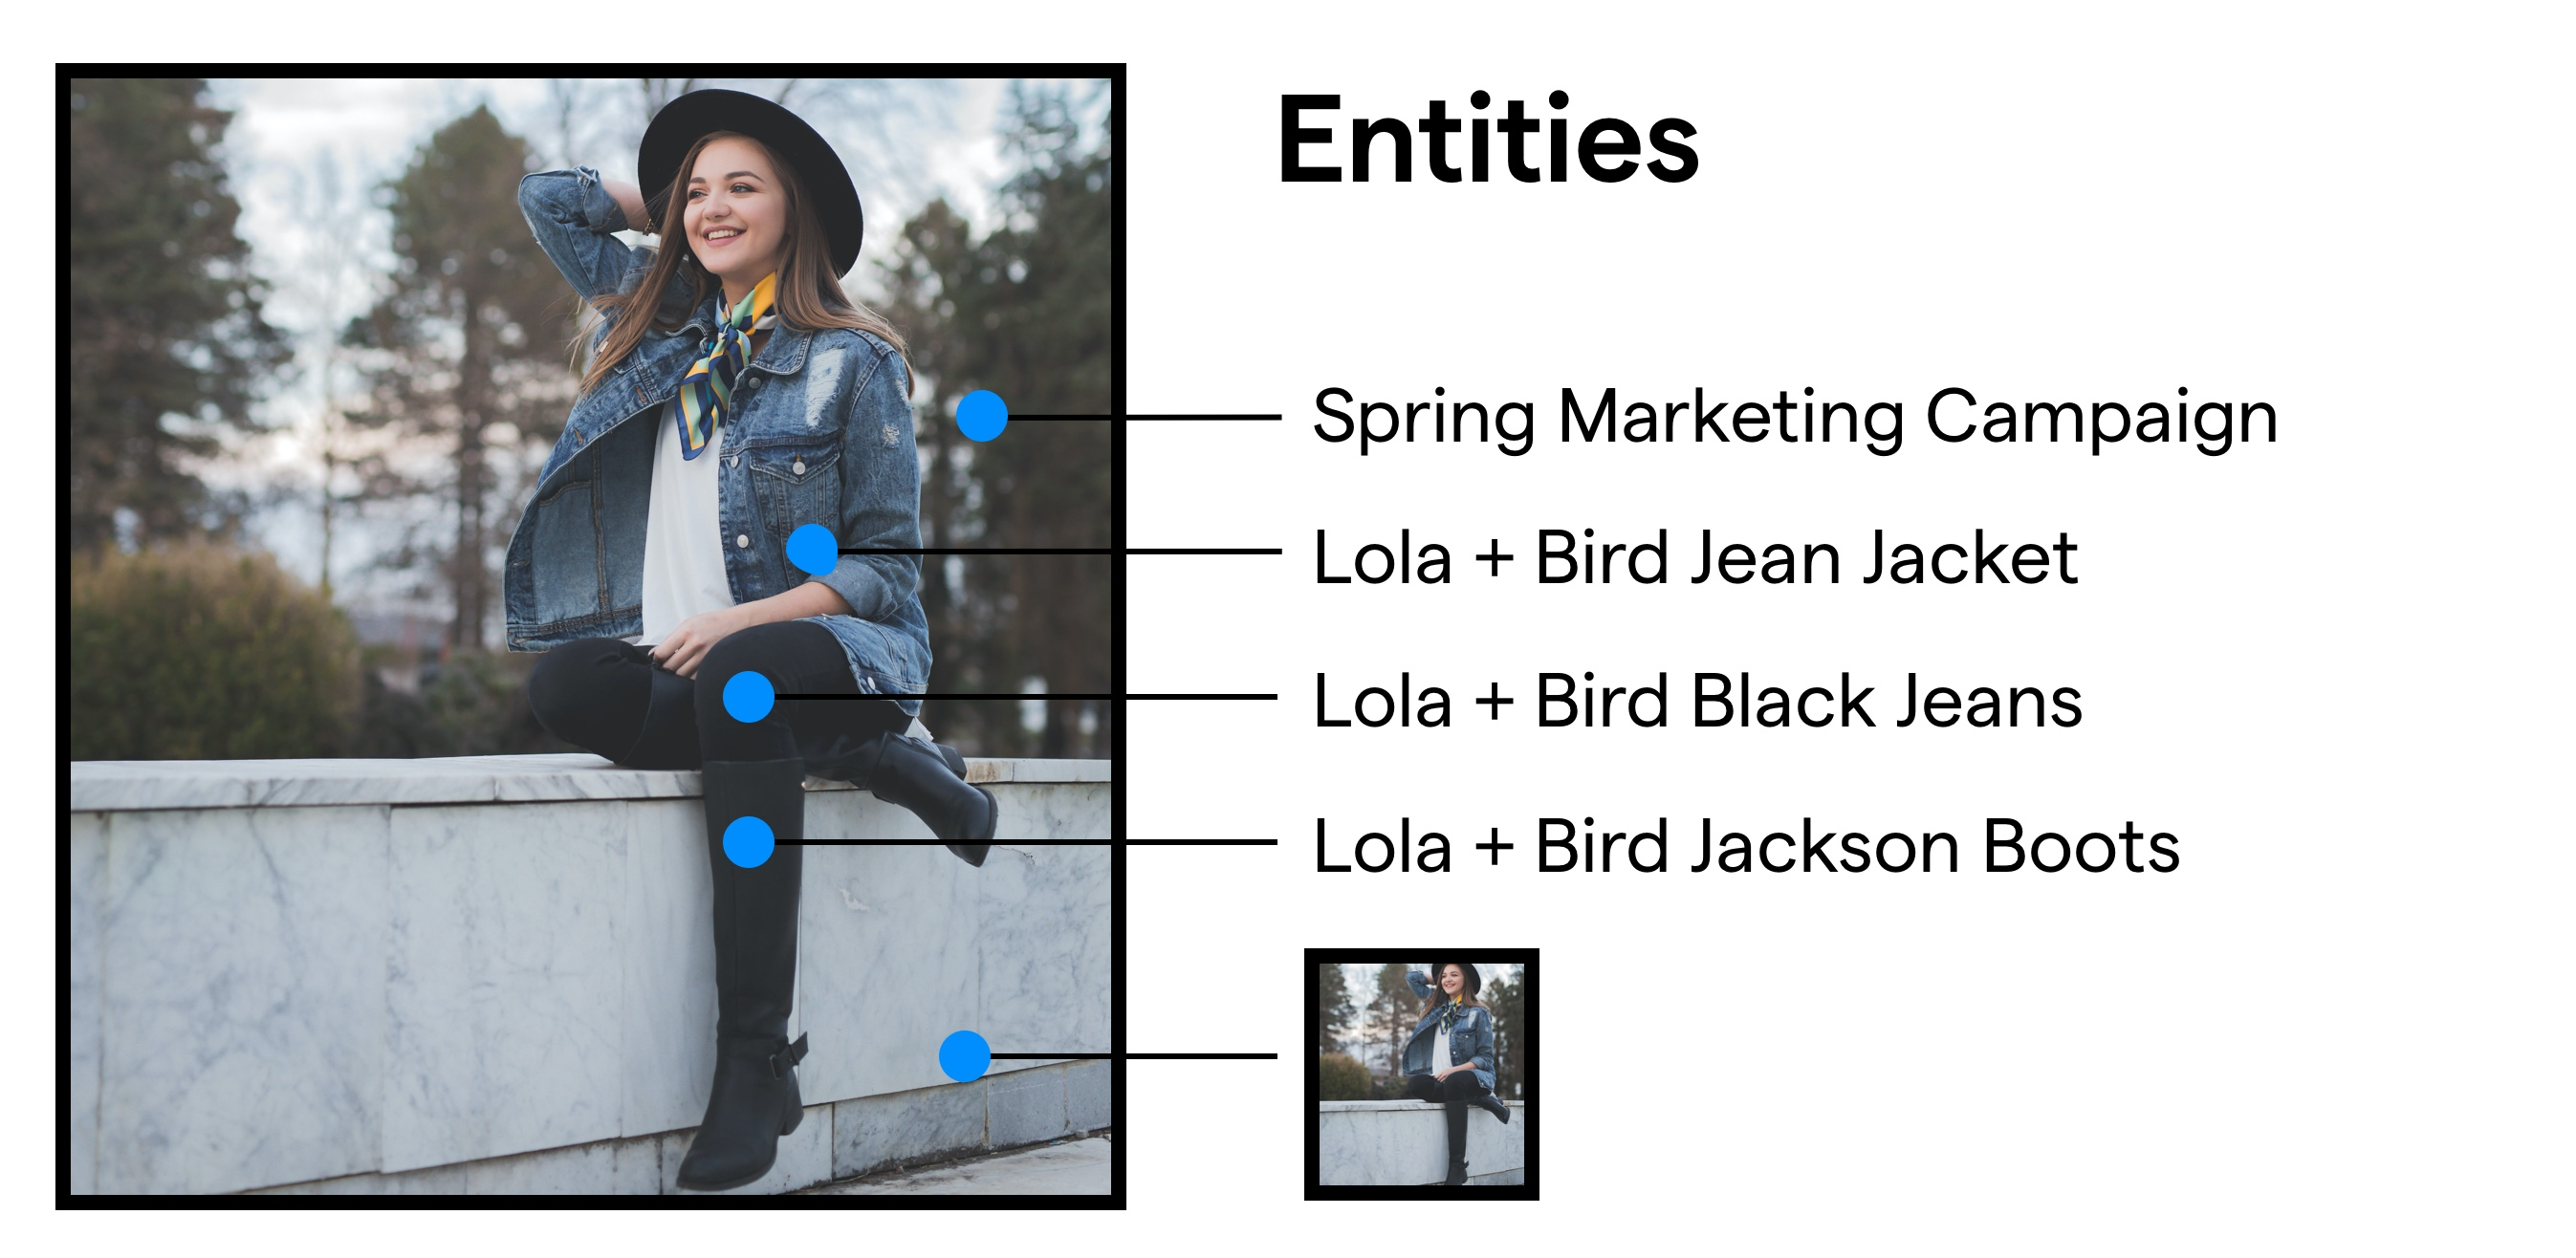 Female wearing a blouse, jeans, and boots. Entities highlighted include Spring Marketing Campaign, Lola + Bird White Blouse, Lola + Bird Black Jeans, Lola + Bird Jackson Boots, photo itself.